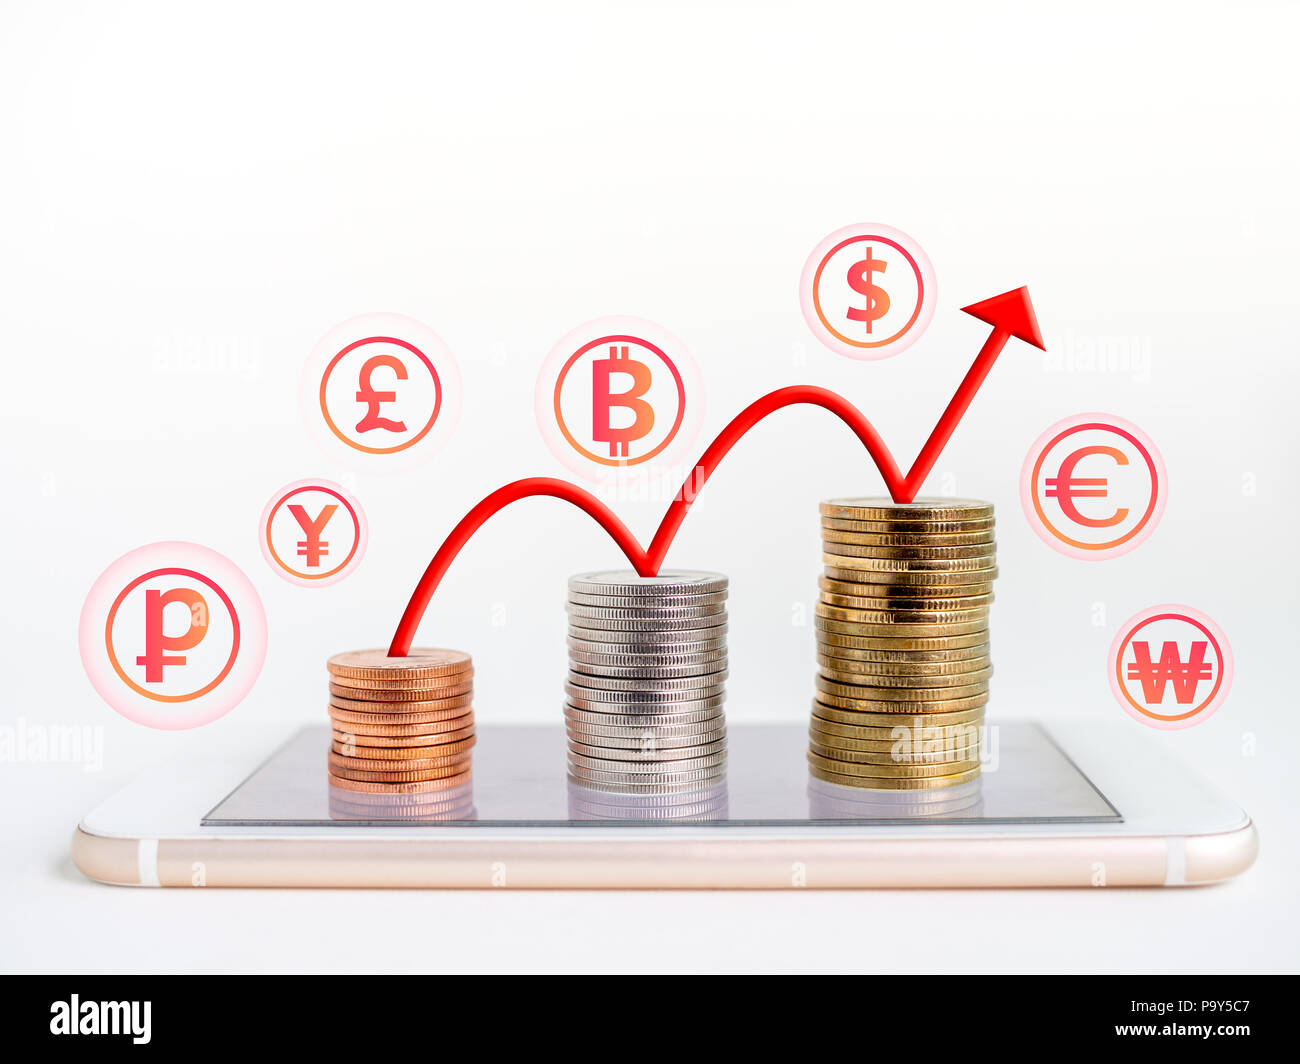 Making money online. Business financial online concept. money, stack of colourful coins on mobile phone with red rising up arrow graph on coins and cu - Stock Image